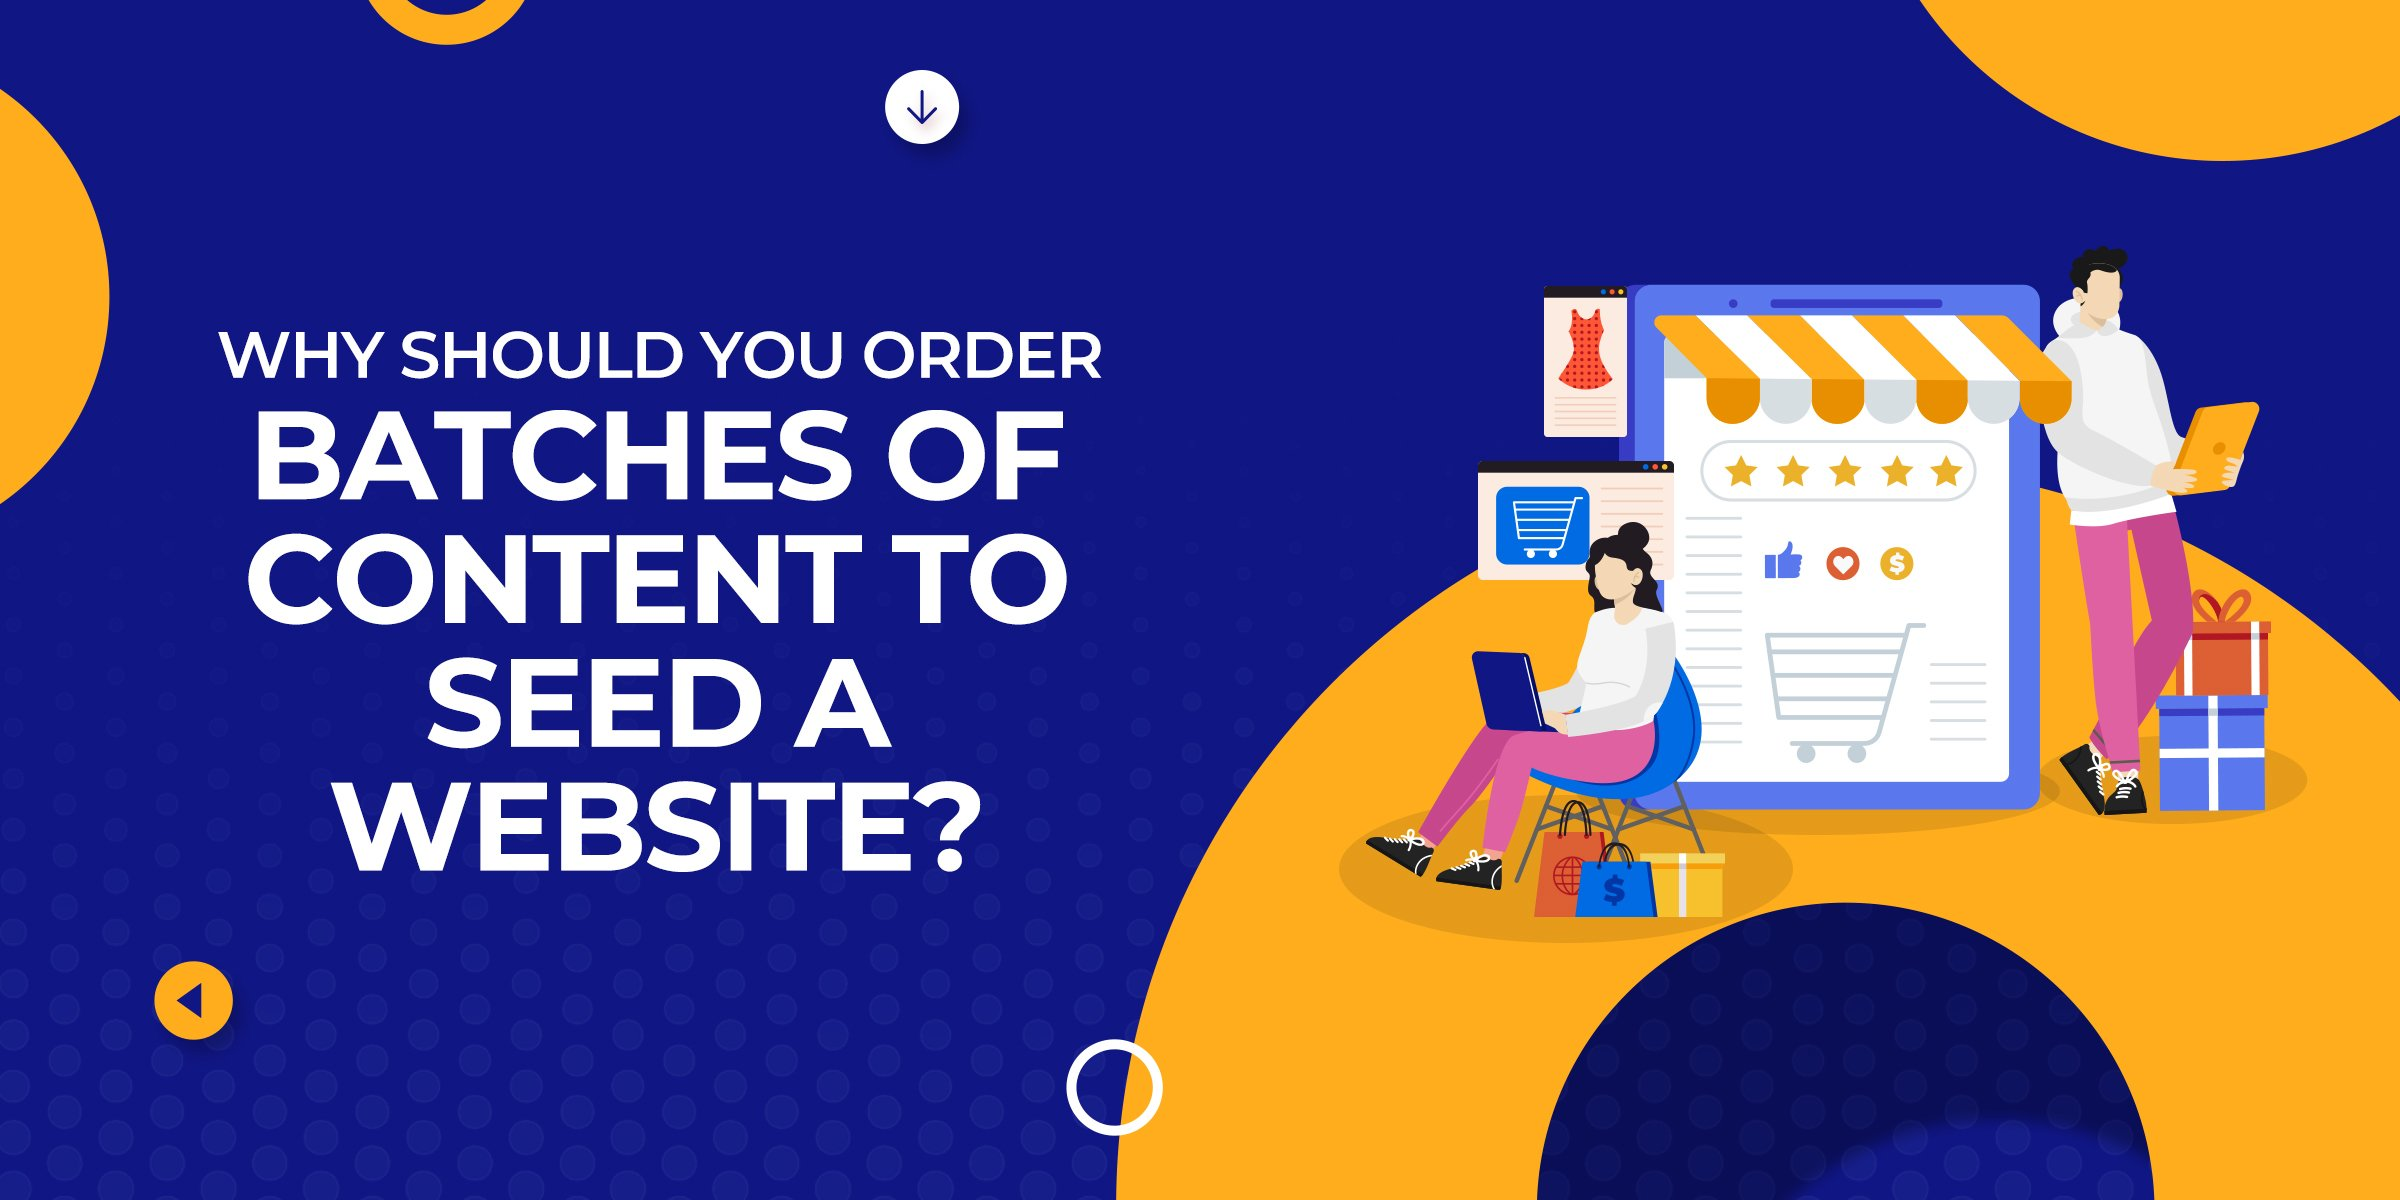 Why Order Batches of Content to Seed Website